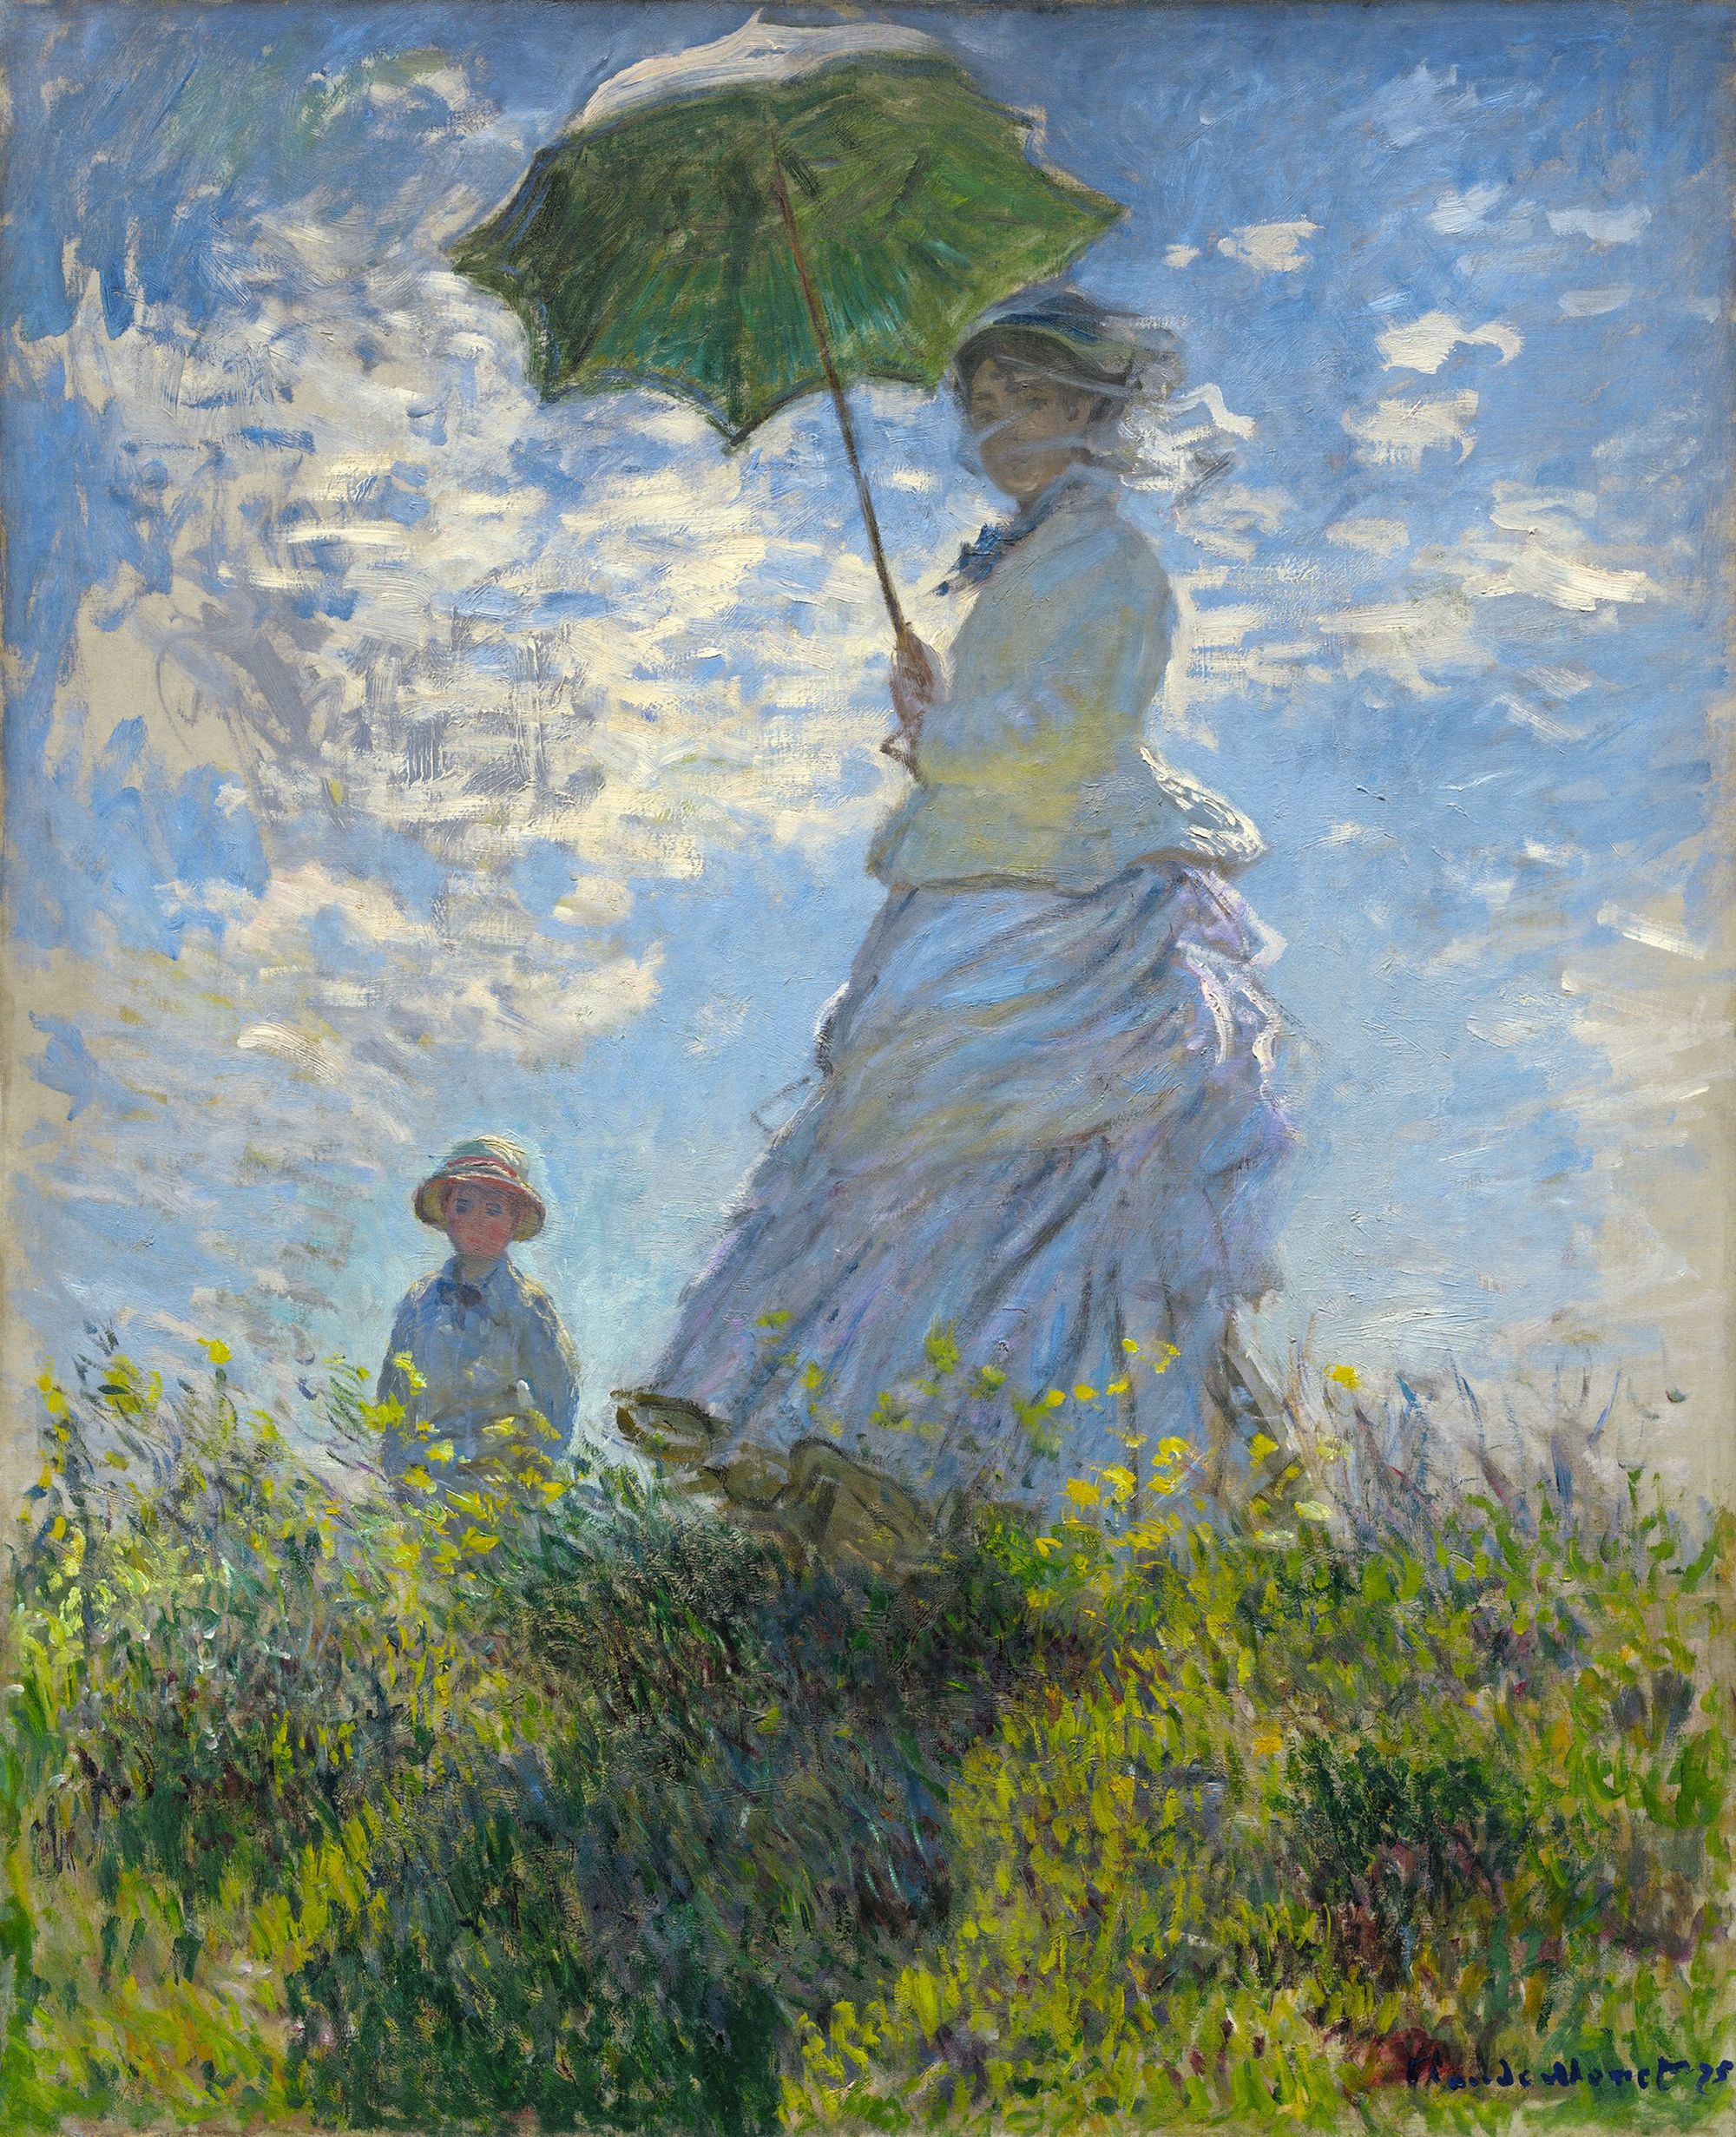 Claude Monet, La Promenade ou La Femme à l'ombrelle, 1875, huile sur toile, 100 × 81 cm, National Gallery of Art, Washington.